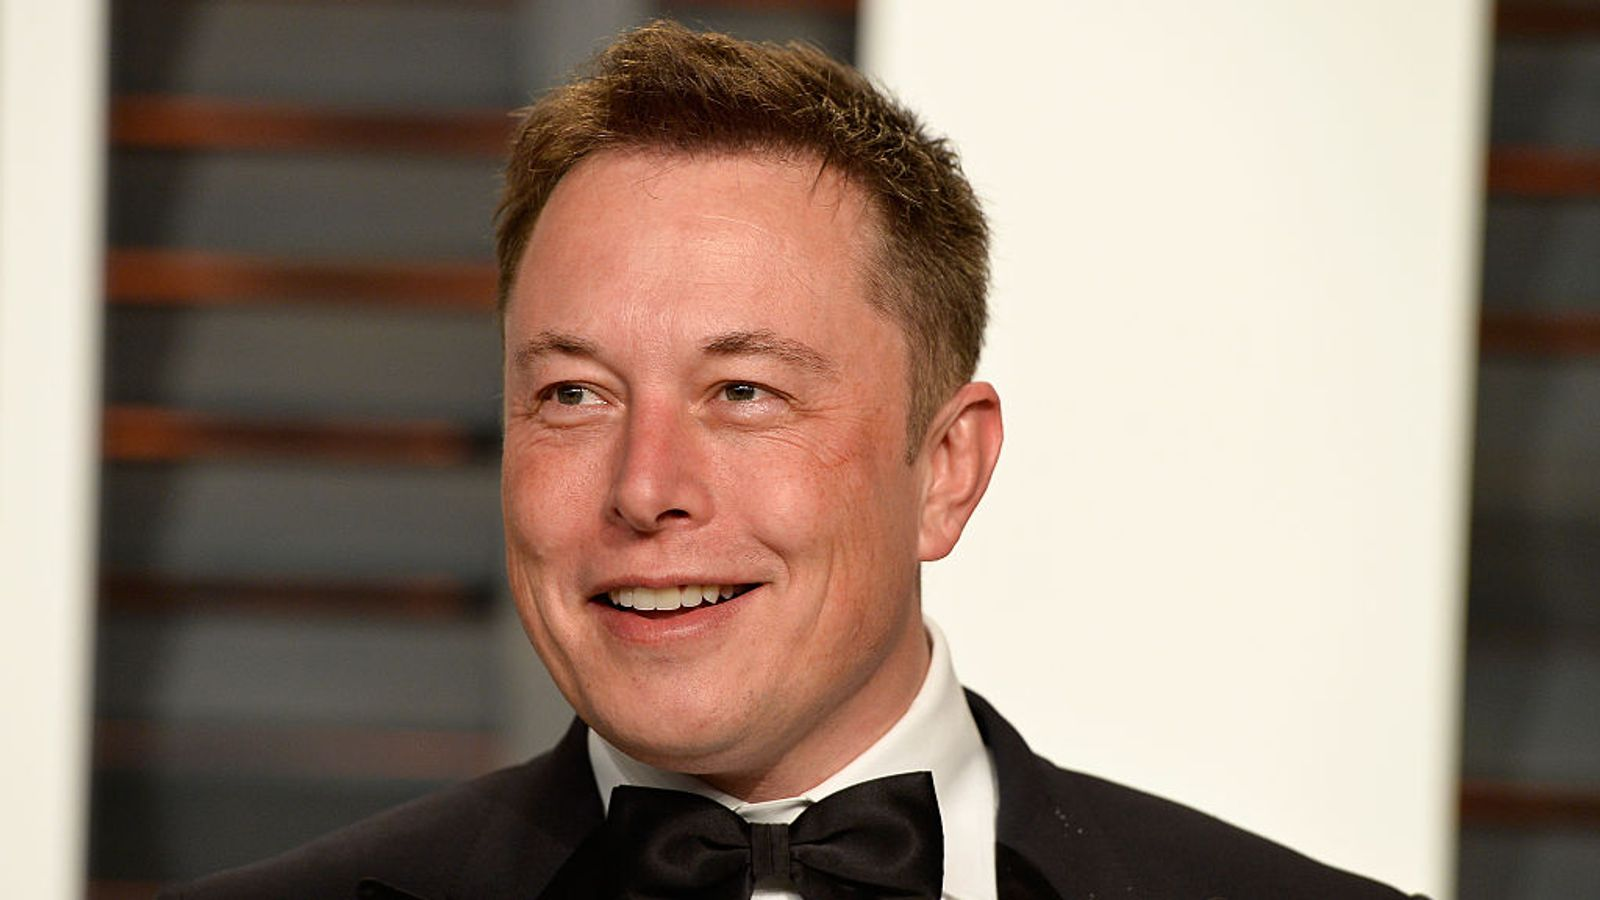 Elon Musk overtakes Bill Gates to become world's second richest person